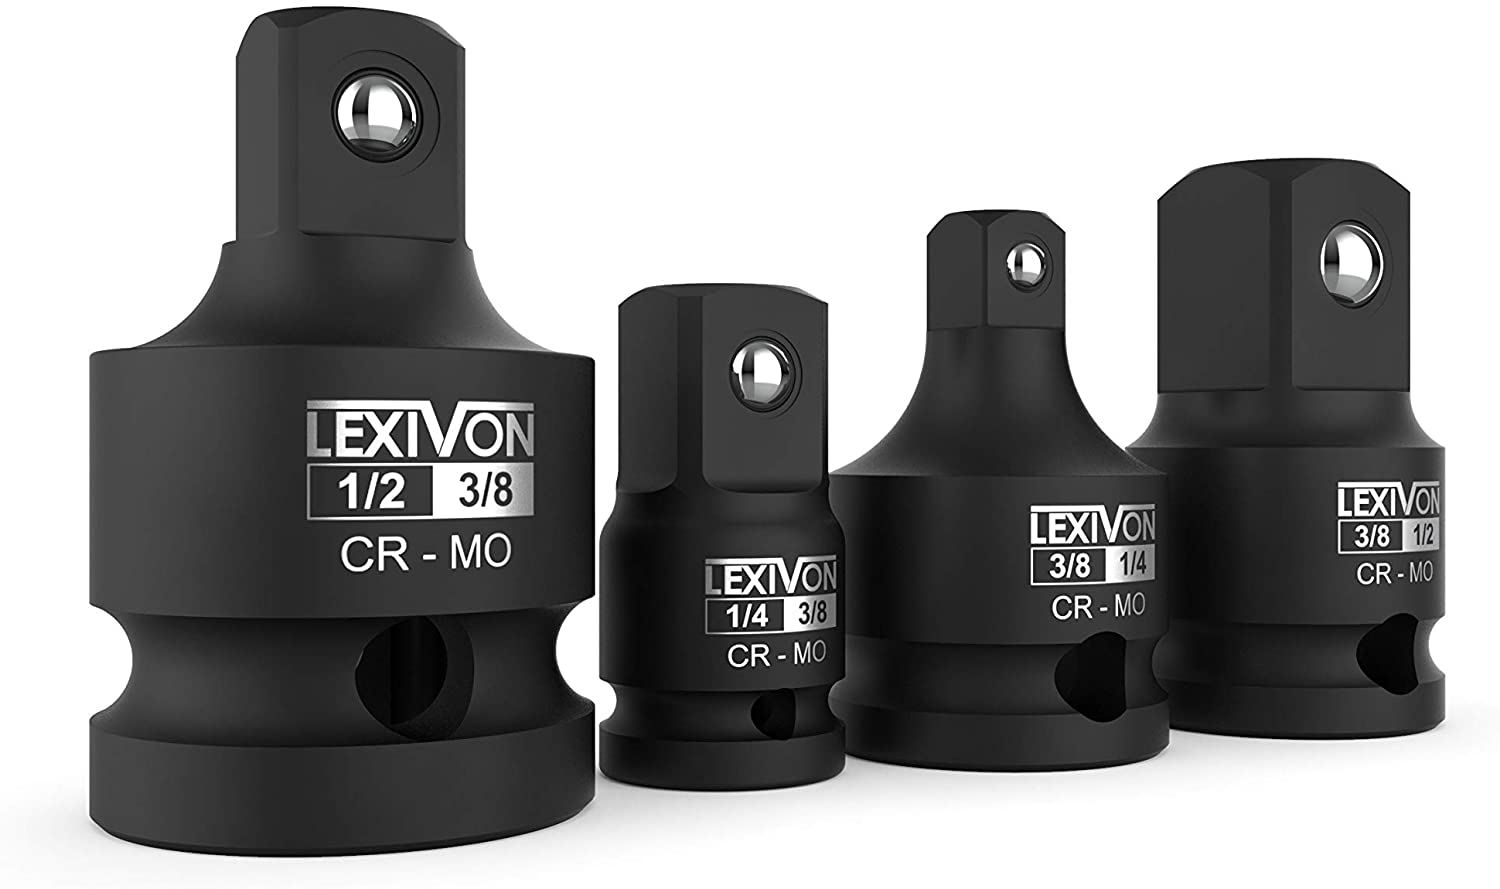 "Lexivon Adaptors & Reducers For Impact Sockets, 1/4"" 3/8"" 1/2"" 1/2"", Steel Alloy - Set of 4 (LX-112)"